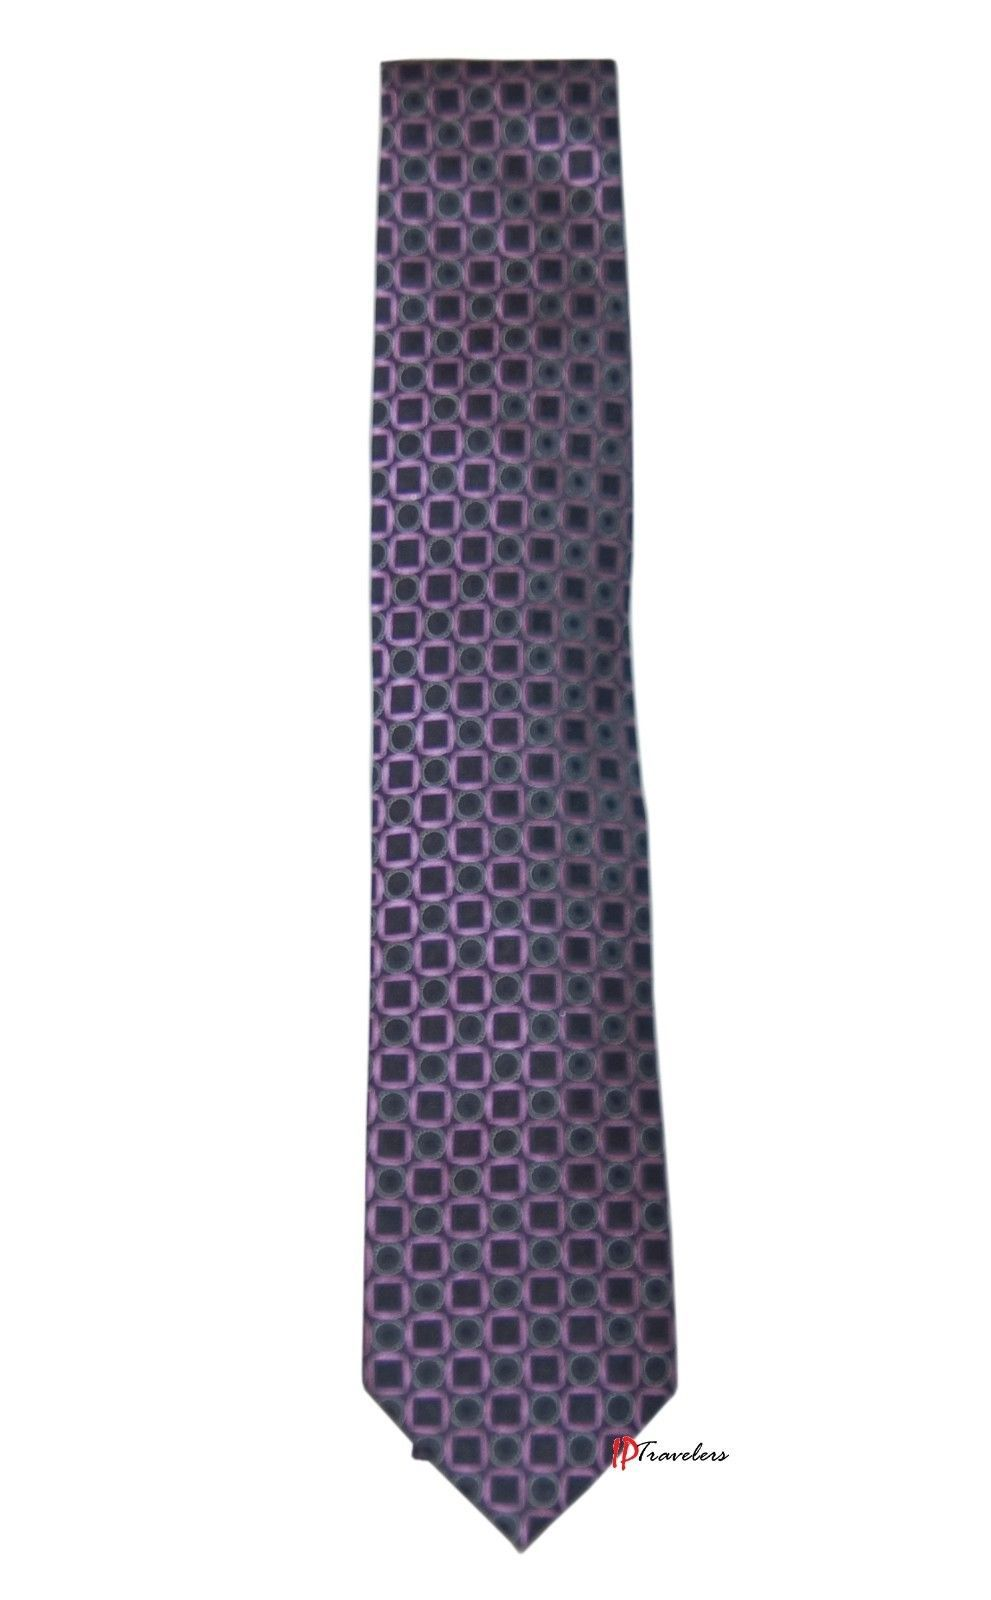 Geoffrey Beene Men's Neck Tie Purple and Black with Circles Square 100% Silk $55